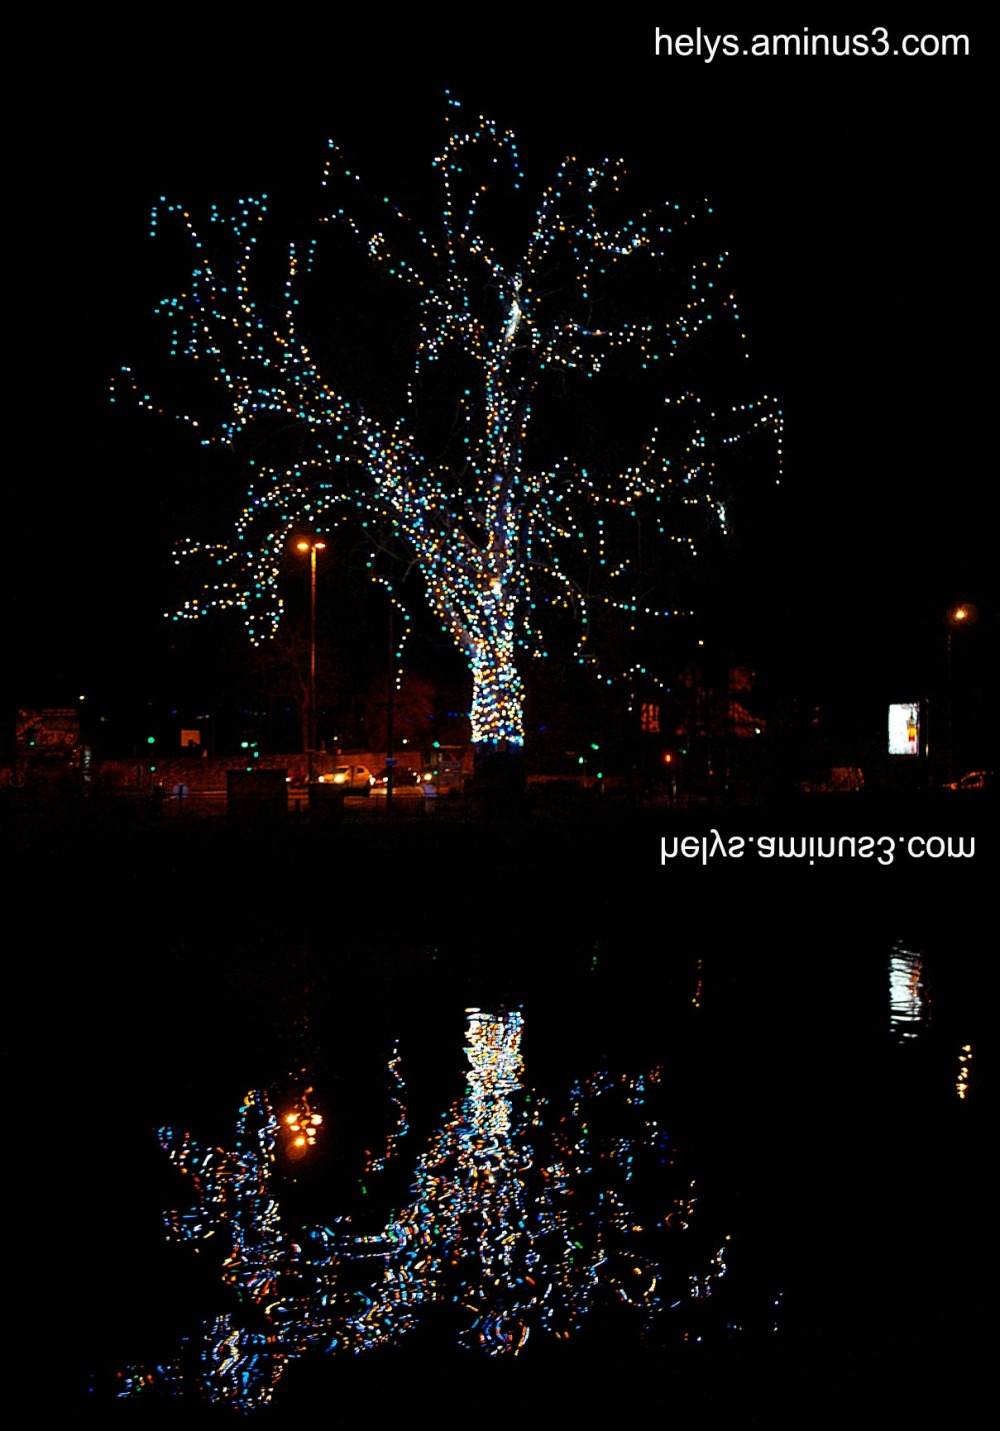 The tree and its reflections1